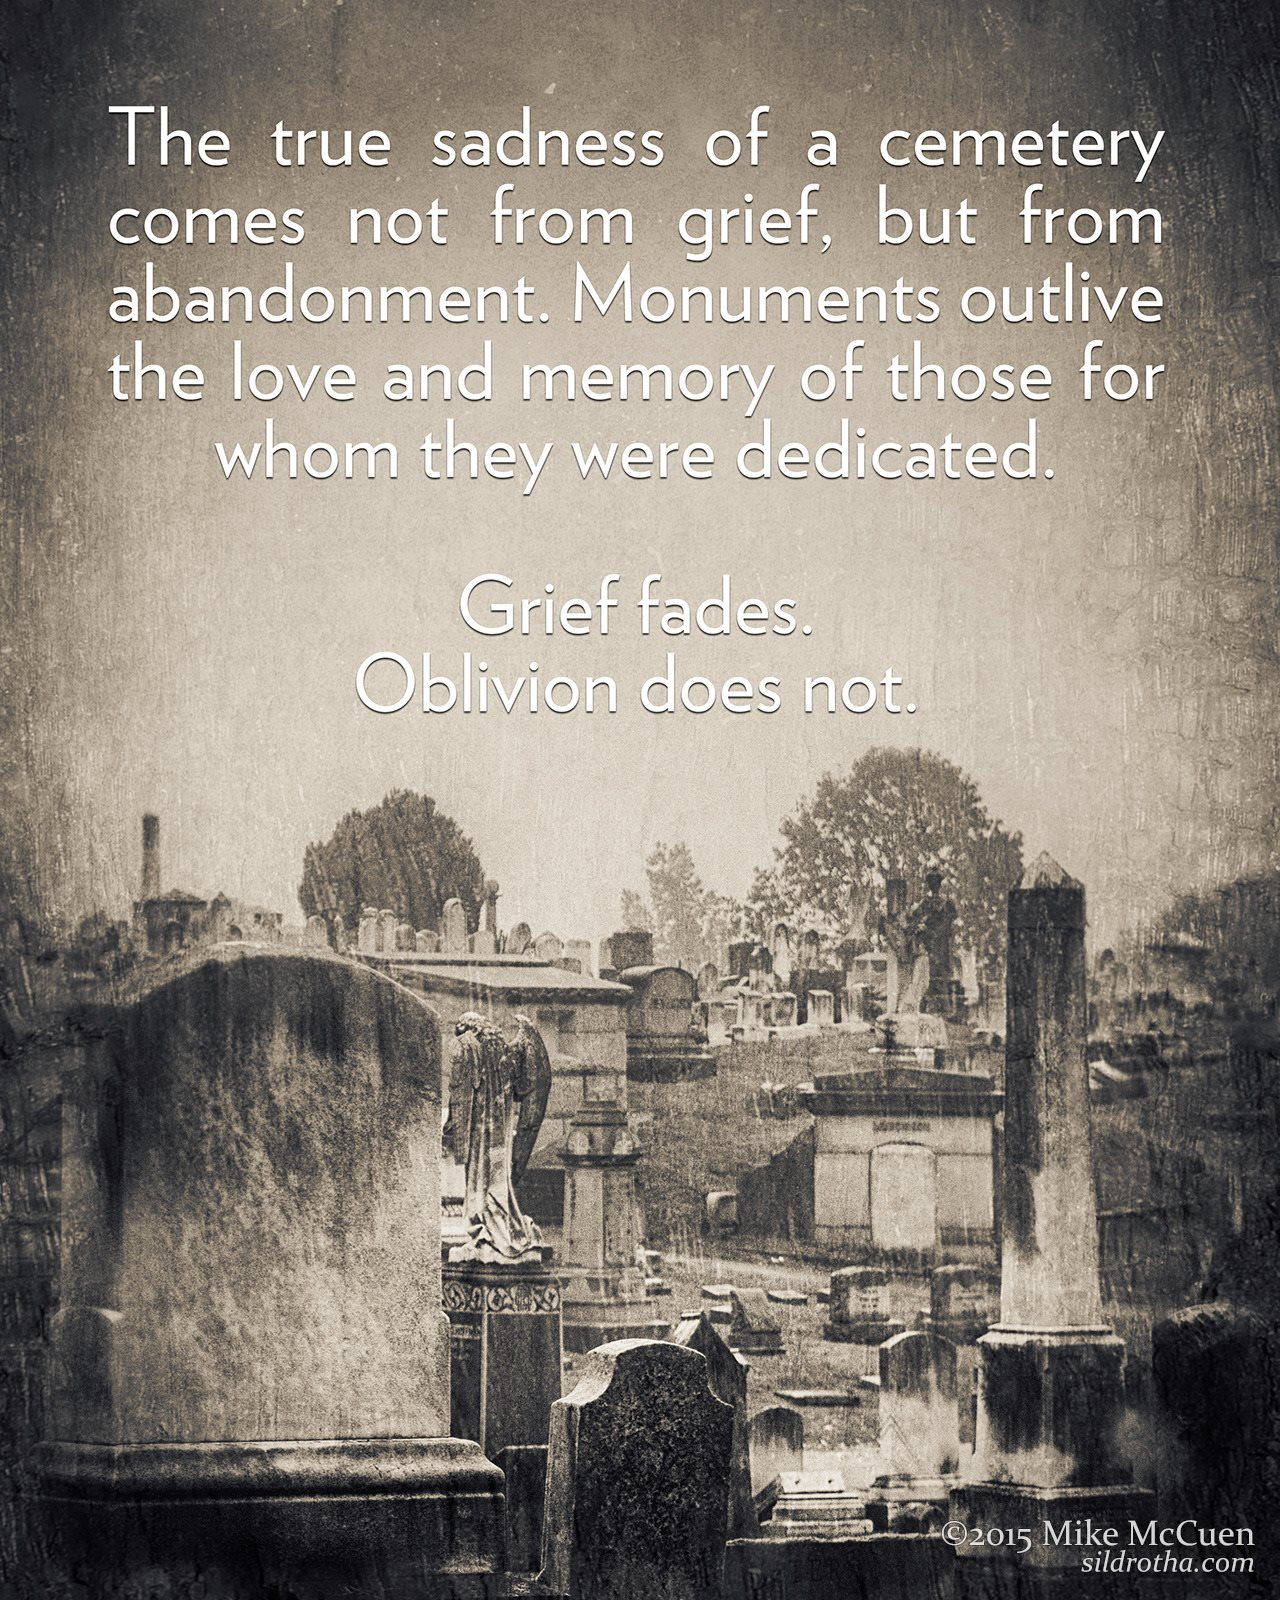 THE TRUE SADNESS OF A CEMETERY